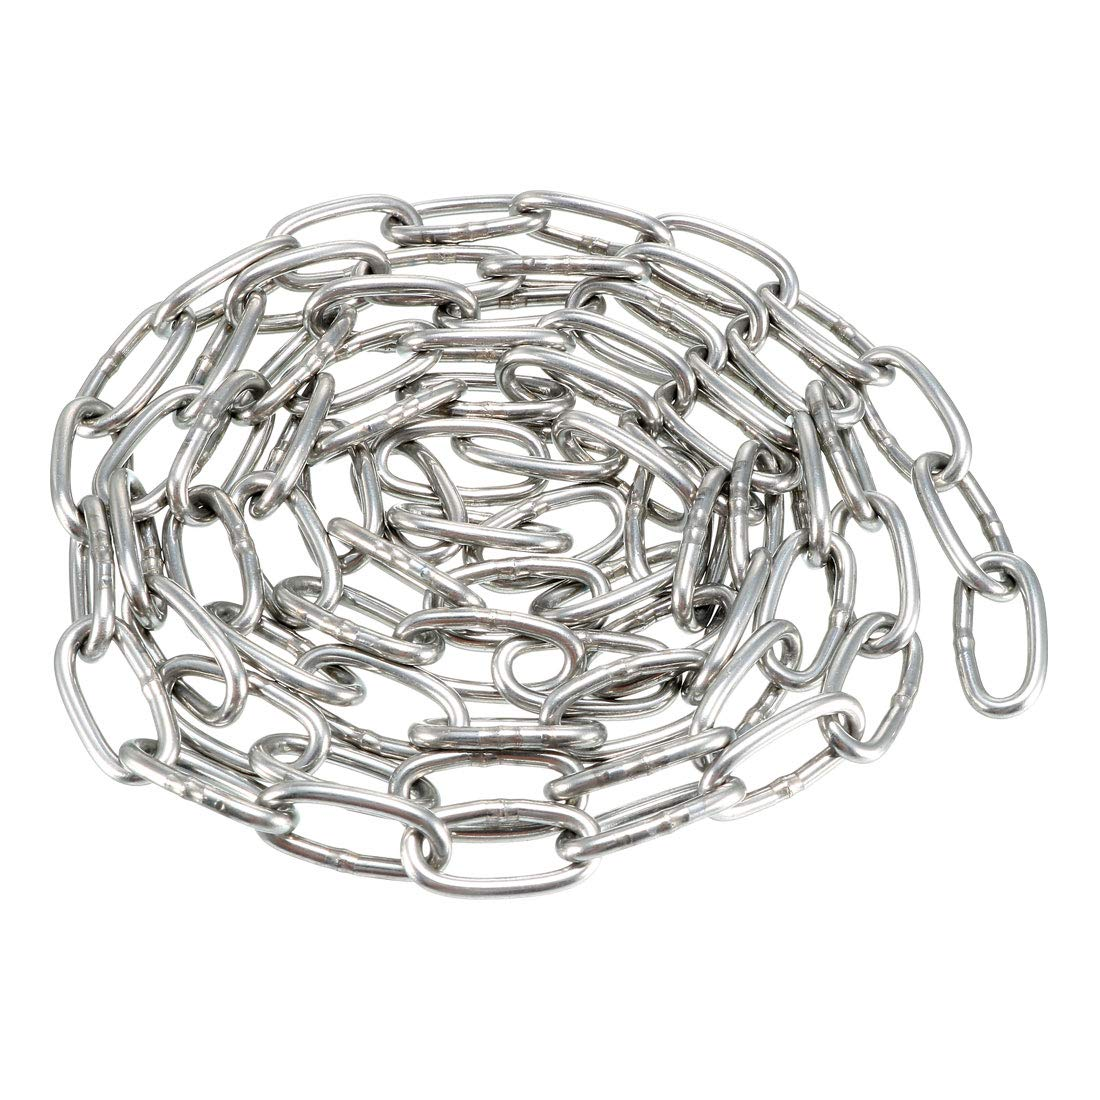 sourcing map Stainless Steel 304 Hardened Proof Coil Chain 1m Length 2mm Thickness Zinc Plated